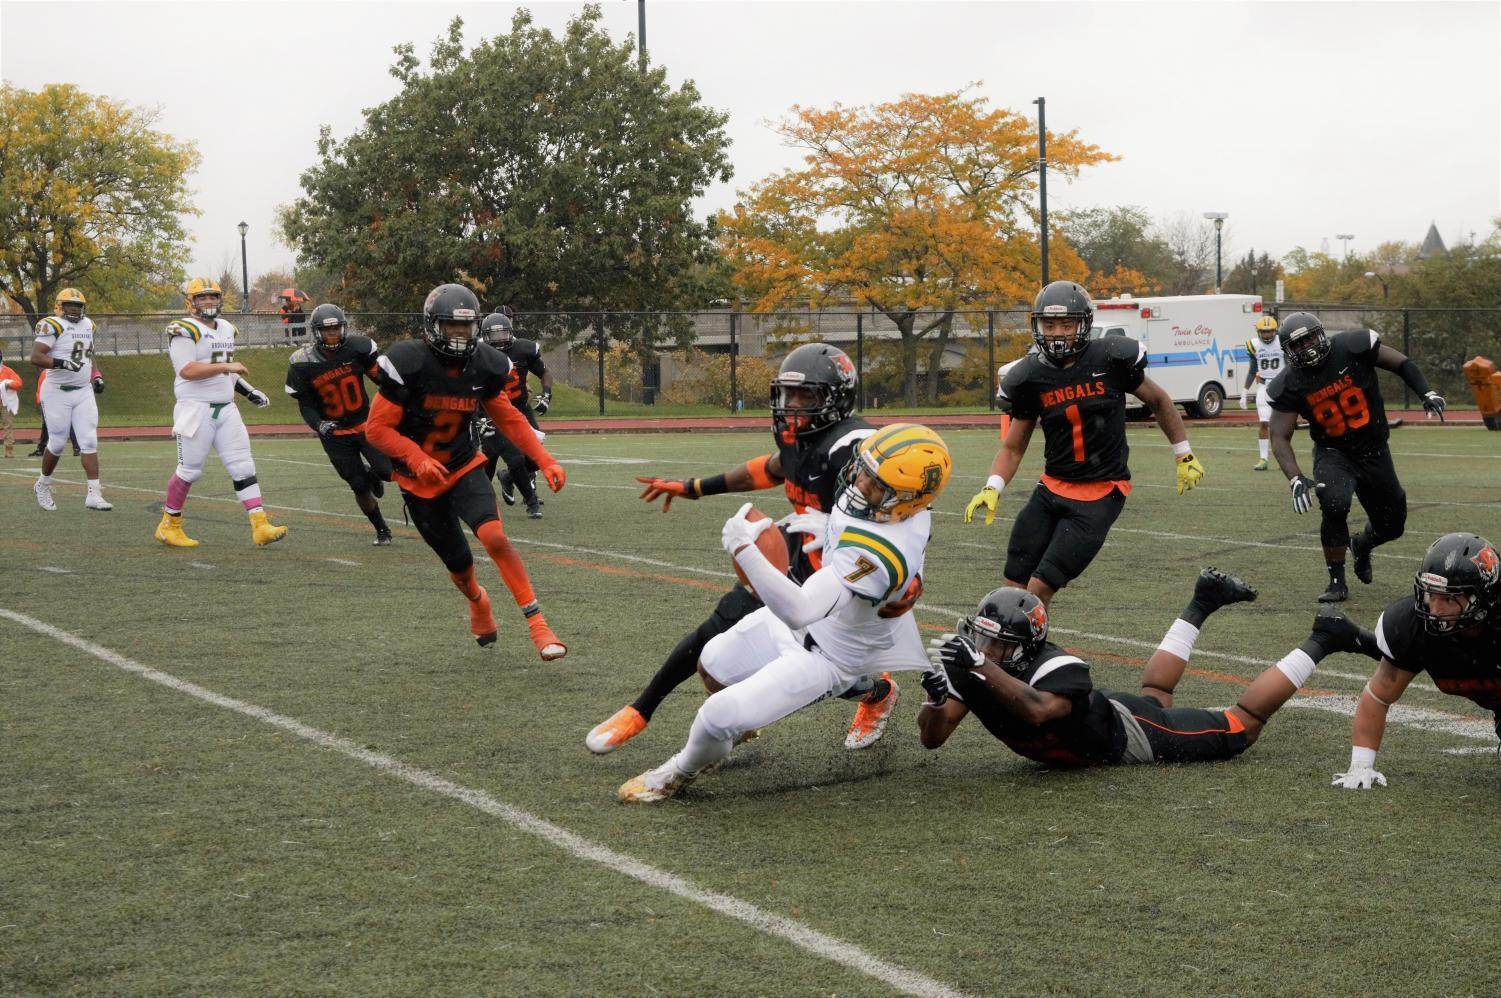 Buffalo State finished 2017 with a 6-5 overall record and appeared in their third bowl game in four years